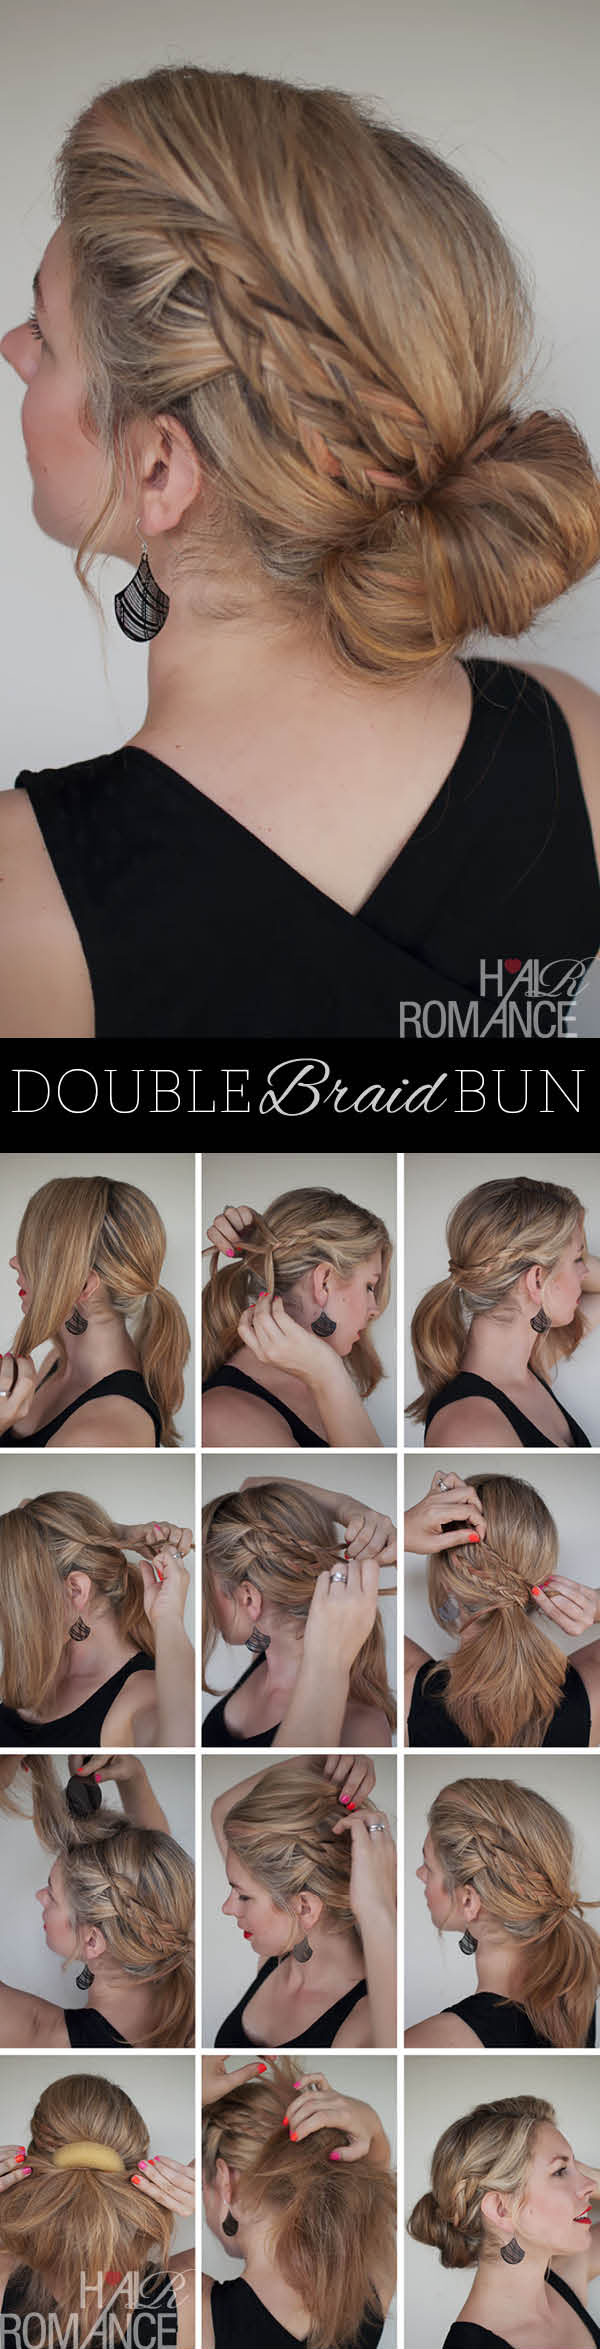 Hair Romance - the double braid bun hairstyle tutorial